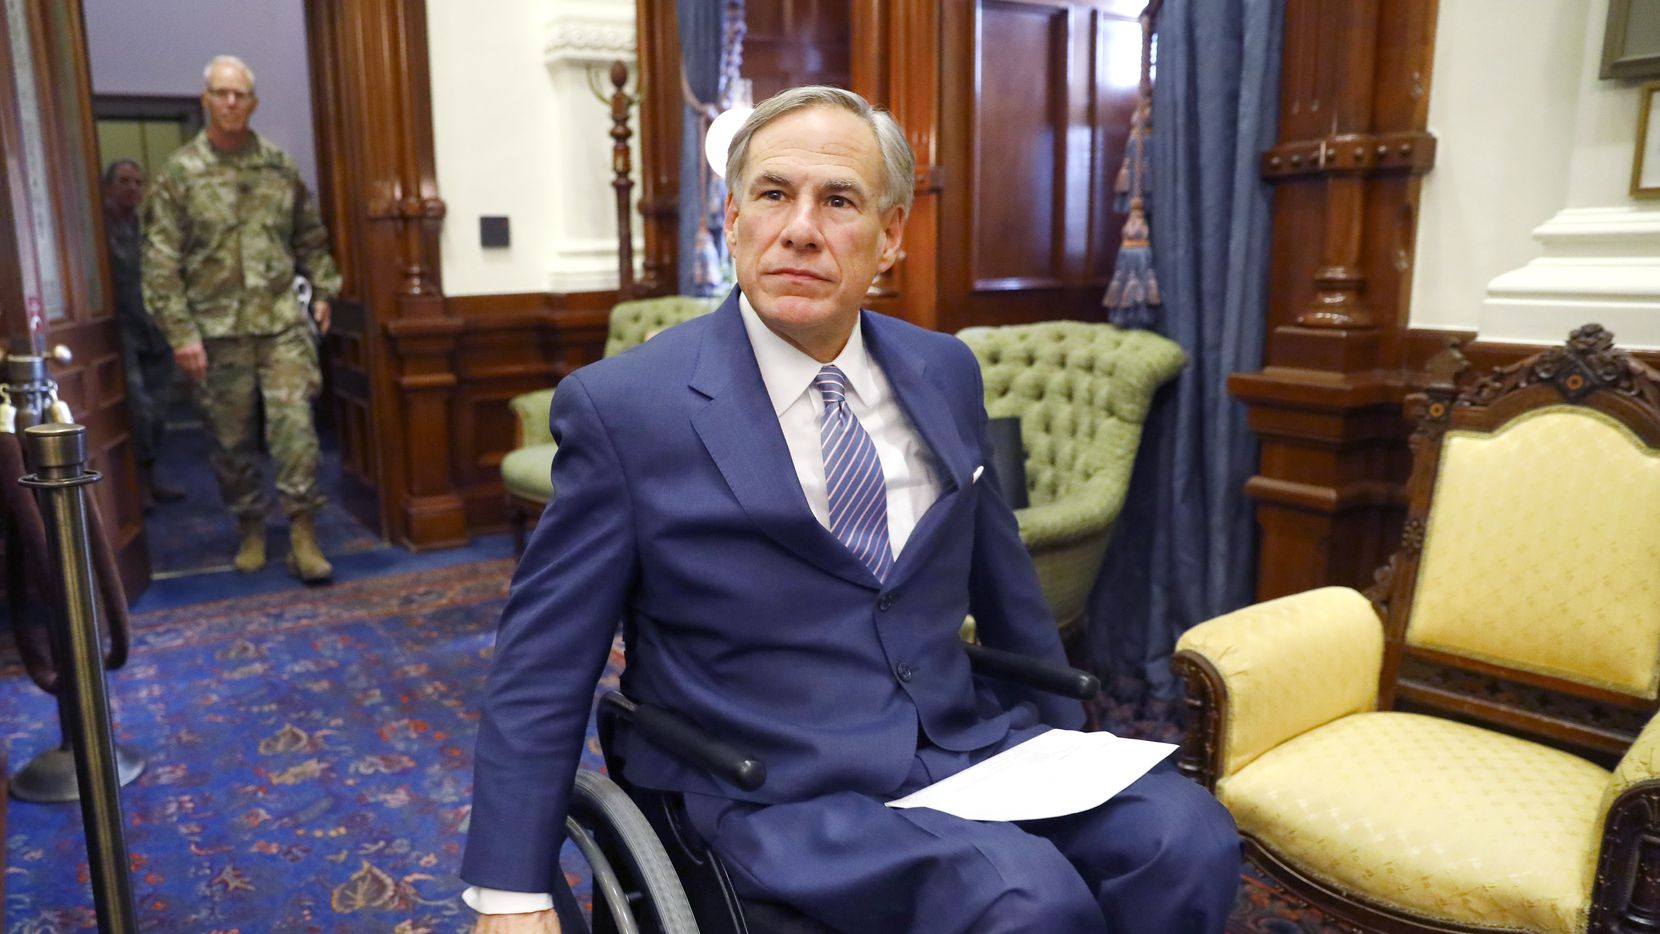 Gov. Greg Abbott, shown entering a March 29 coronavirus news briefing, recently was the butt of some jokes about his use of a wheelchair – and his alleged kowtowing to liberal Texas cities on mask requirements. Empower Texans staffers made the widely denounced remarks, and Abbott's pushing to defeat any GOP candidates in next month's runoffs connected to the group.